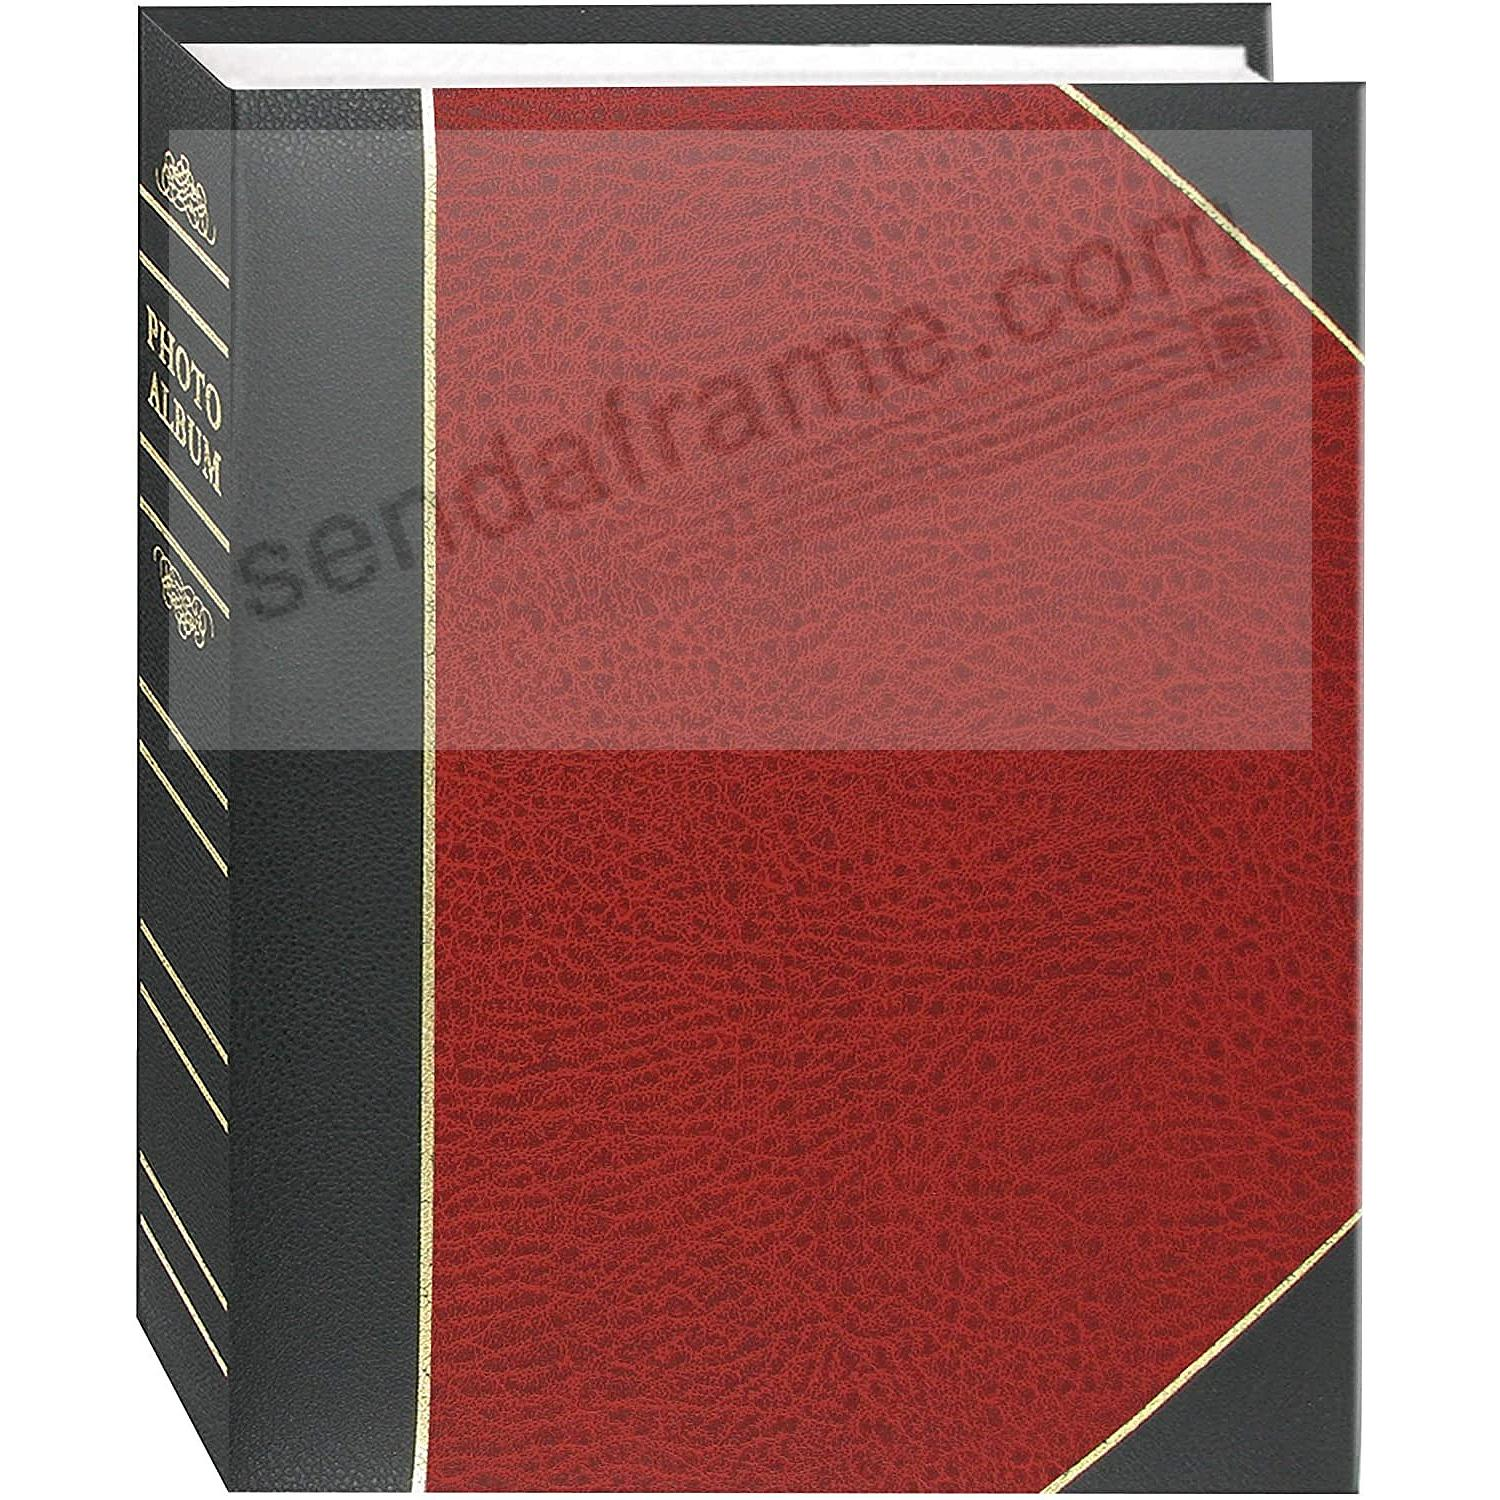 Red LEDGER 4x6 200 Pocket Lé Memo Album by Pioneer®